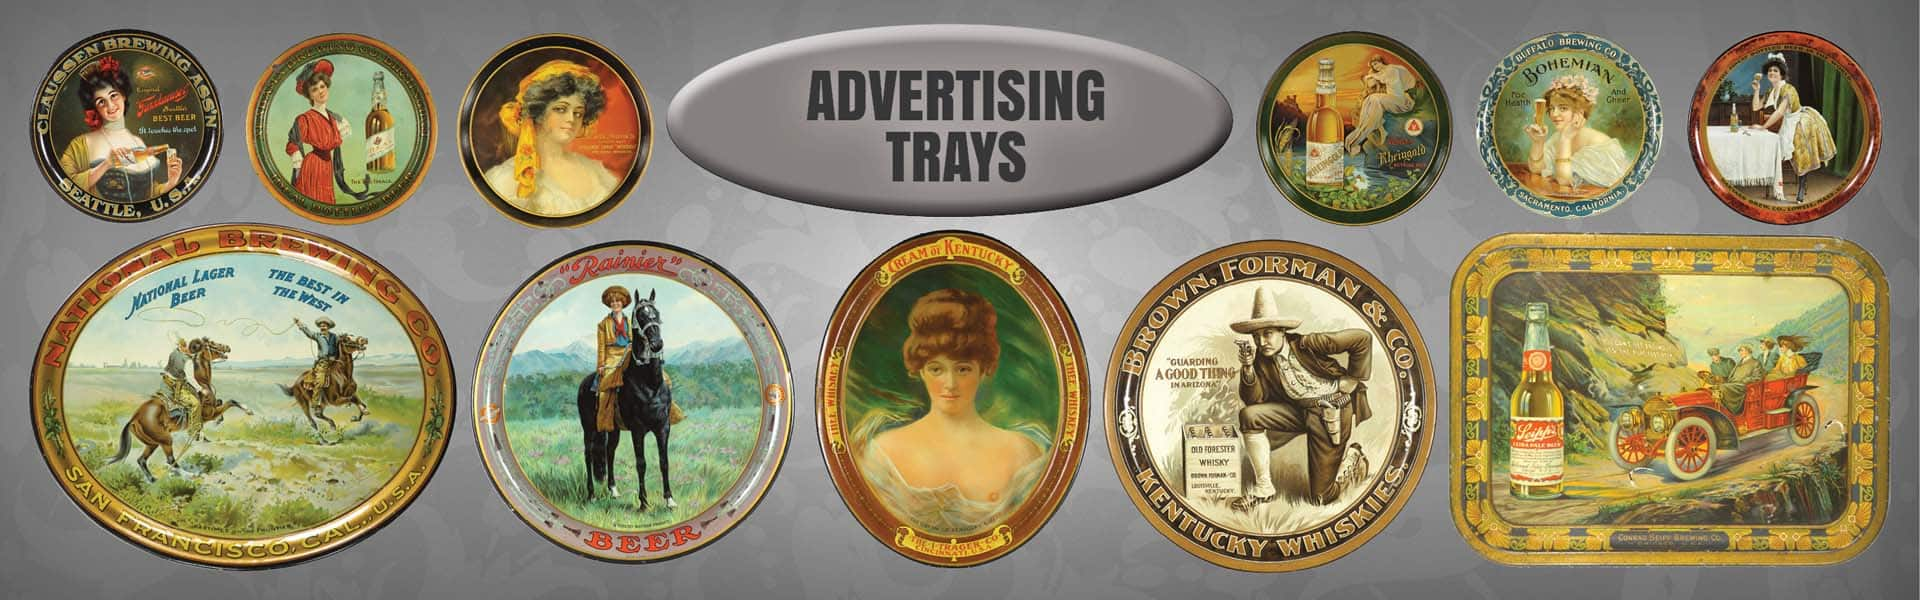 Advertising Trays